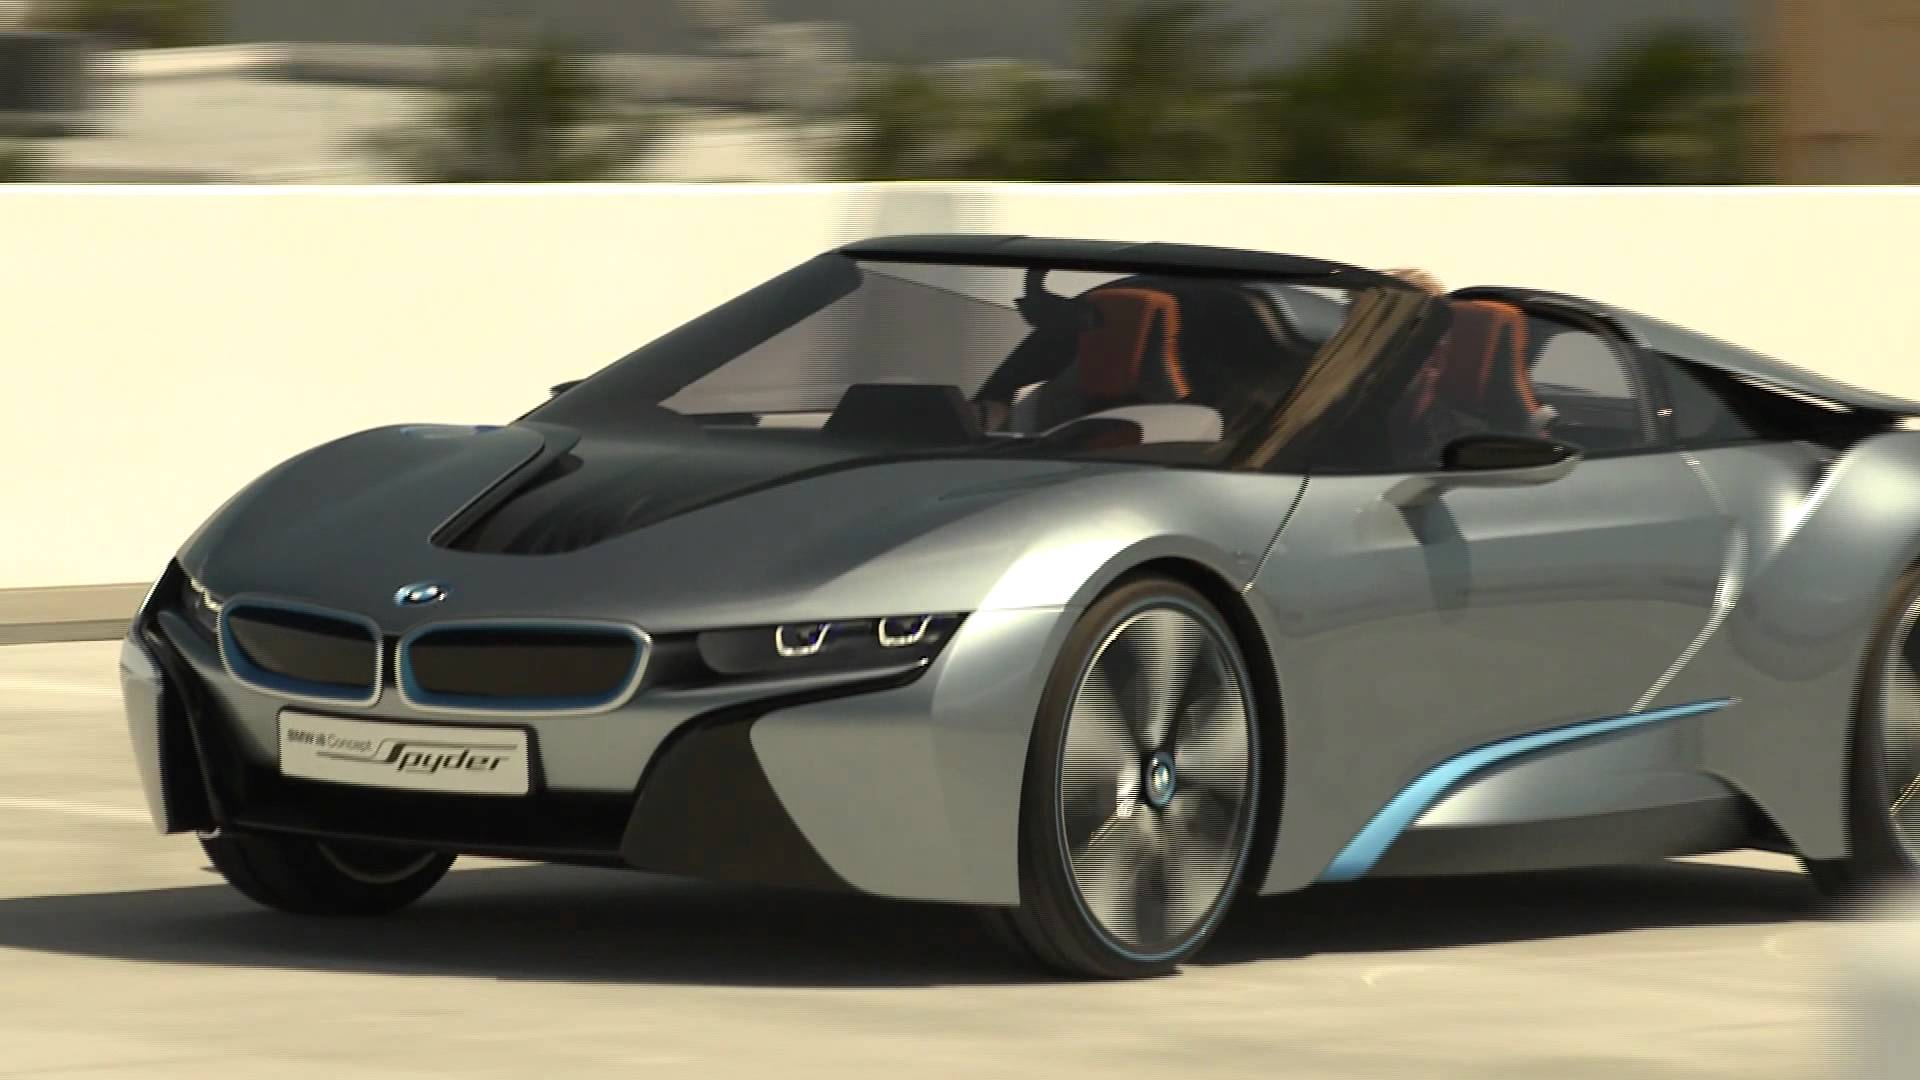 bmw i8 hybrid cars life cars fashion lifestyle blog. Black Bedroom Furniture Sets. Home Design Ideas